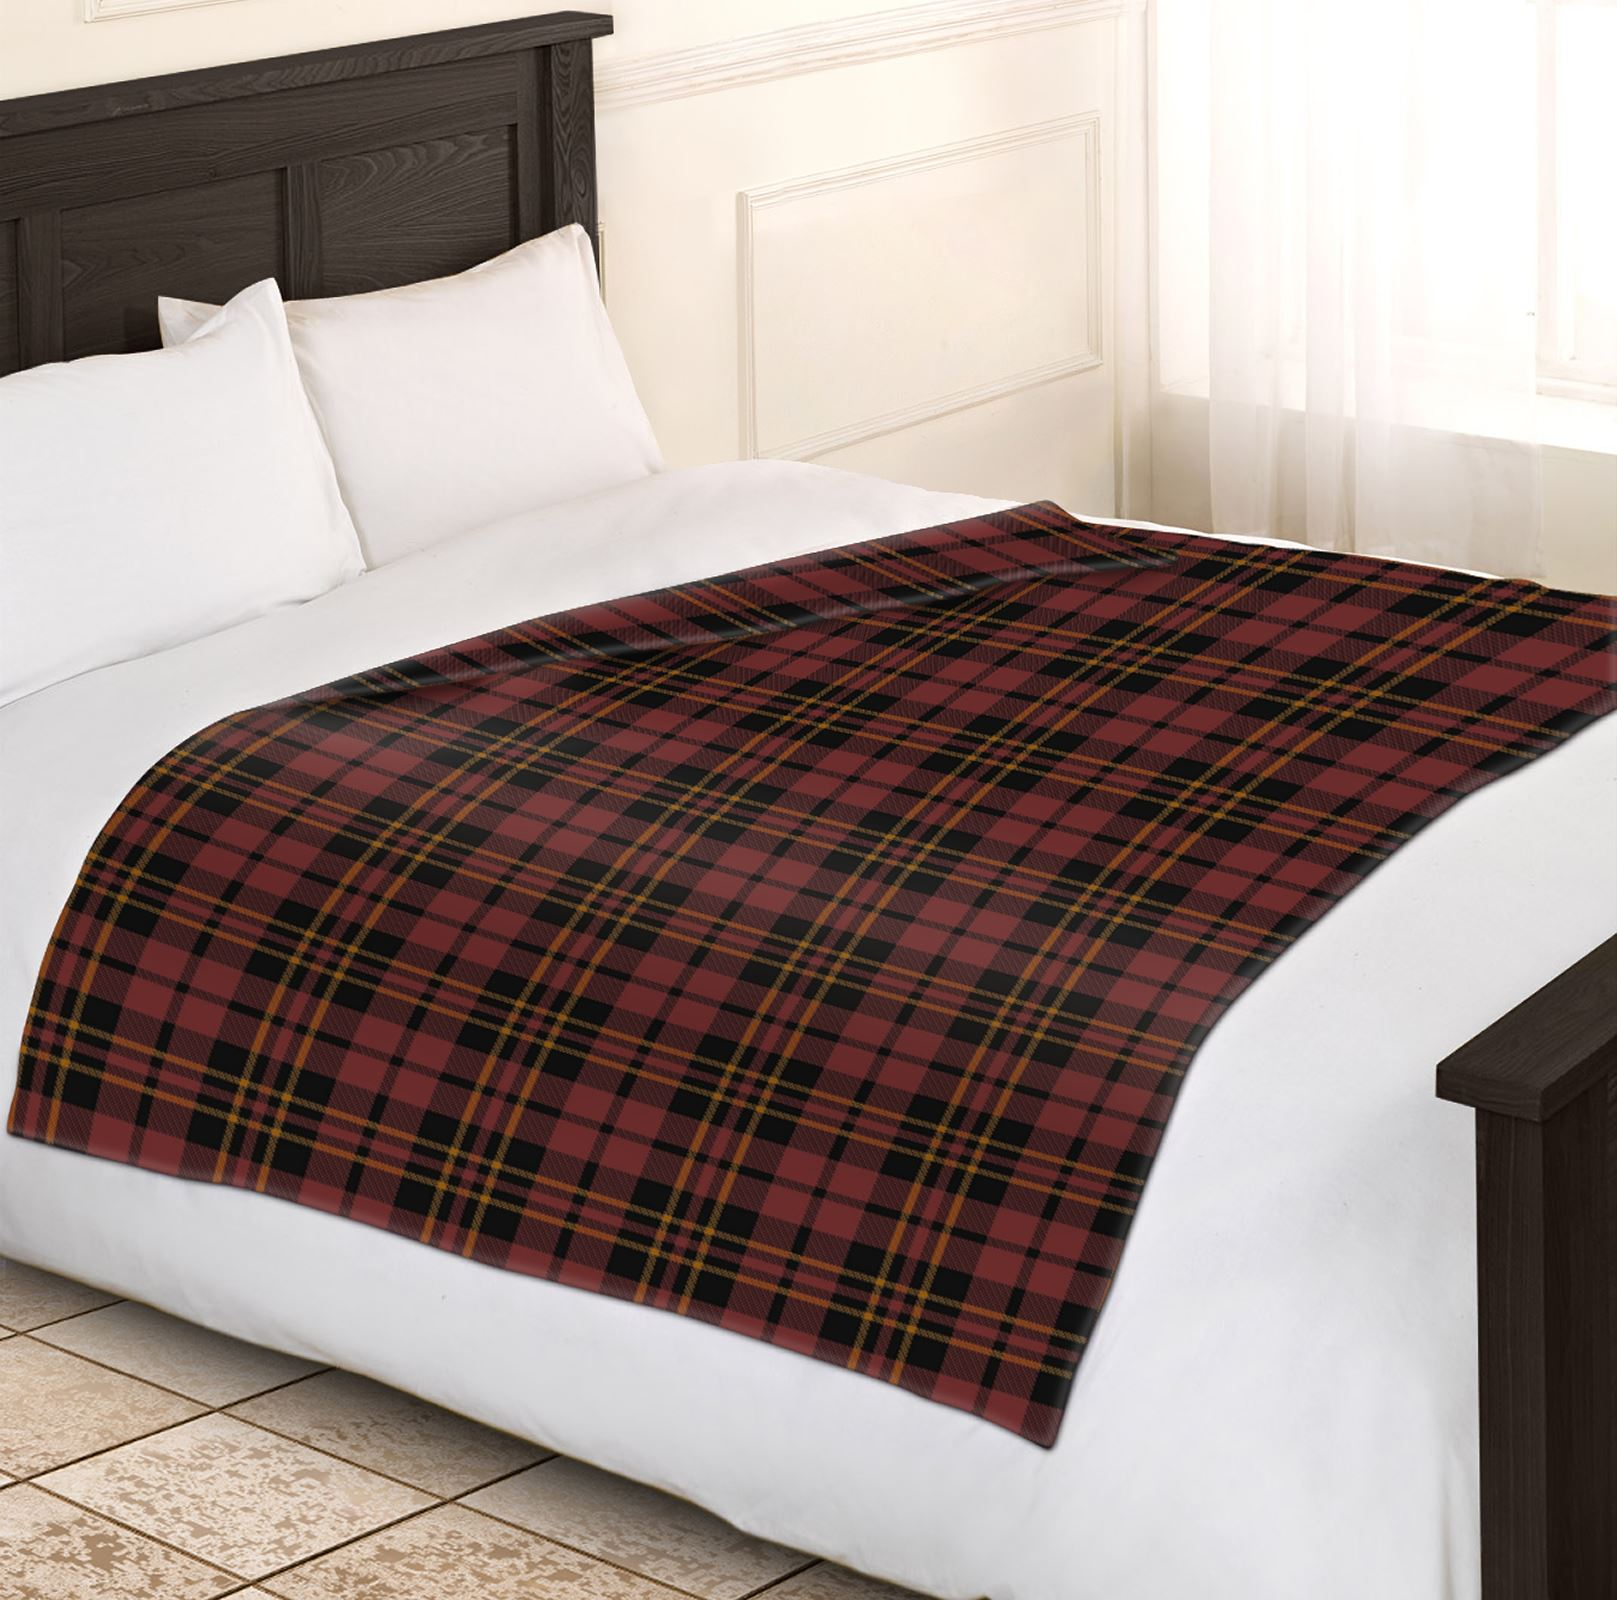 soft warm 200x240cm king size tartan check sofa throw bed fleece travel blanket. Black Bedroom Furniture Sets. Home Design Ideas